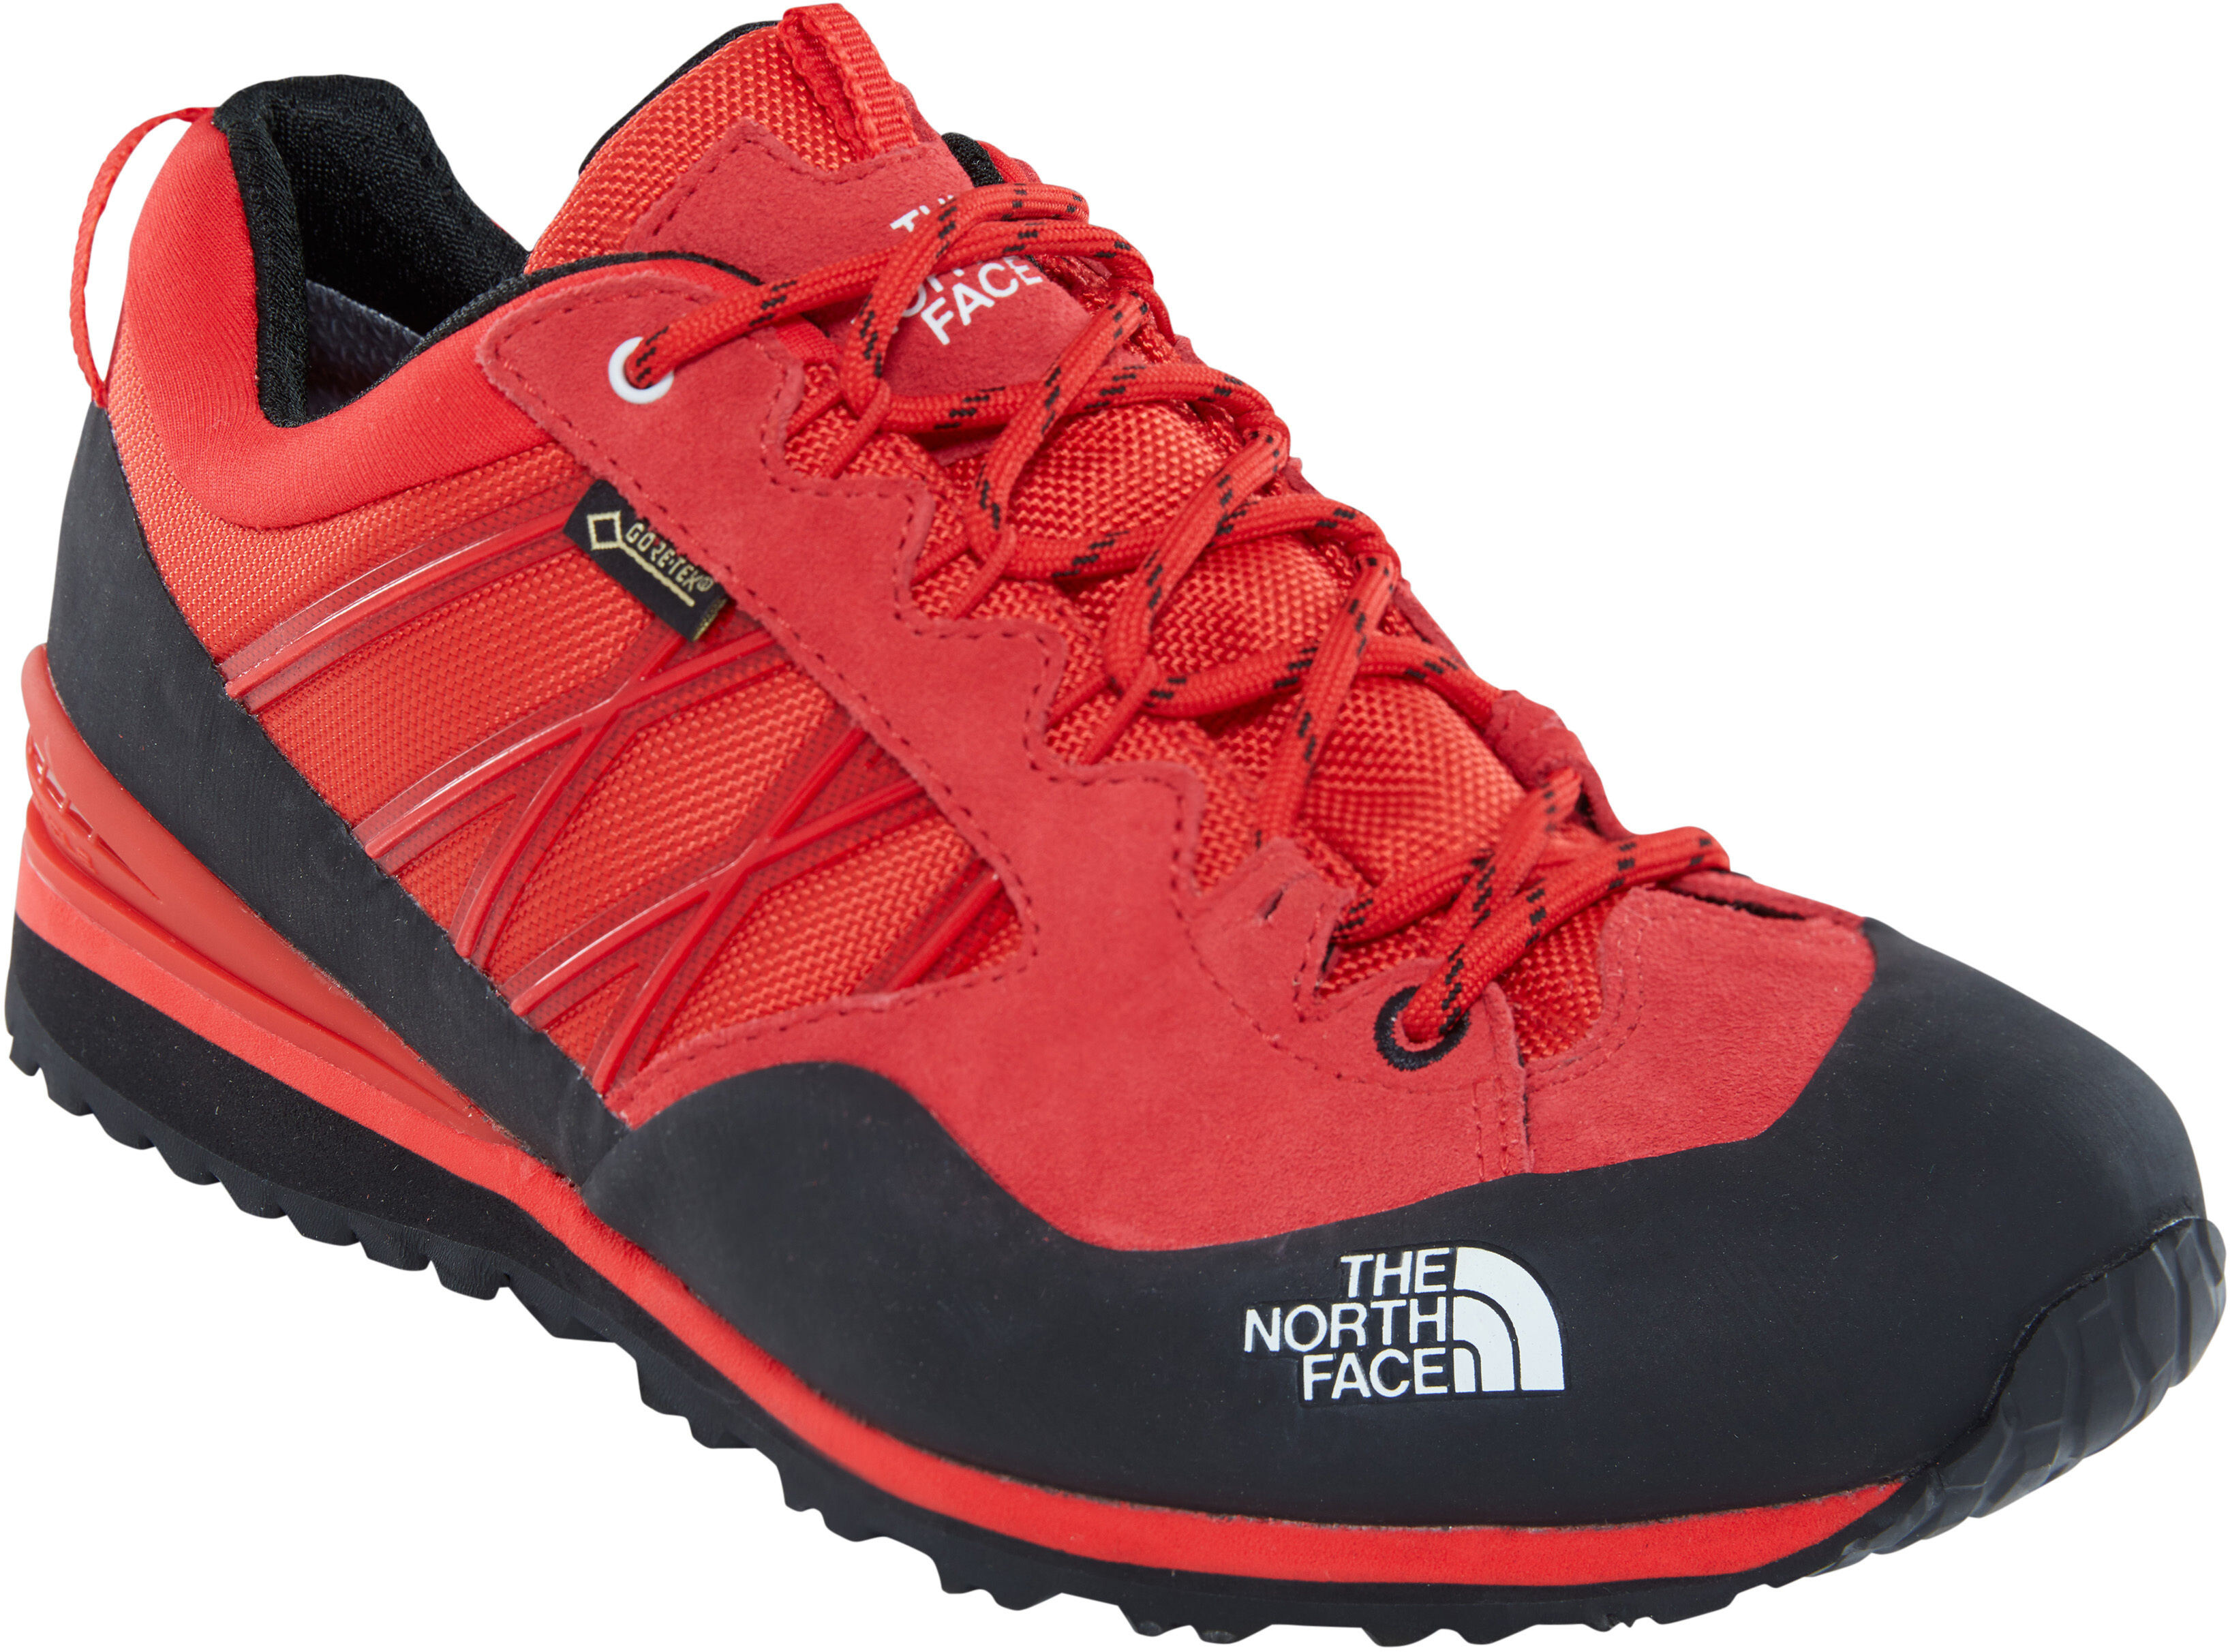 The North Face Verto Plasma II GTX - Chaussures Homme - rouge noir ... e0dd402afbae